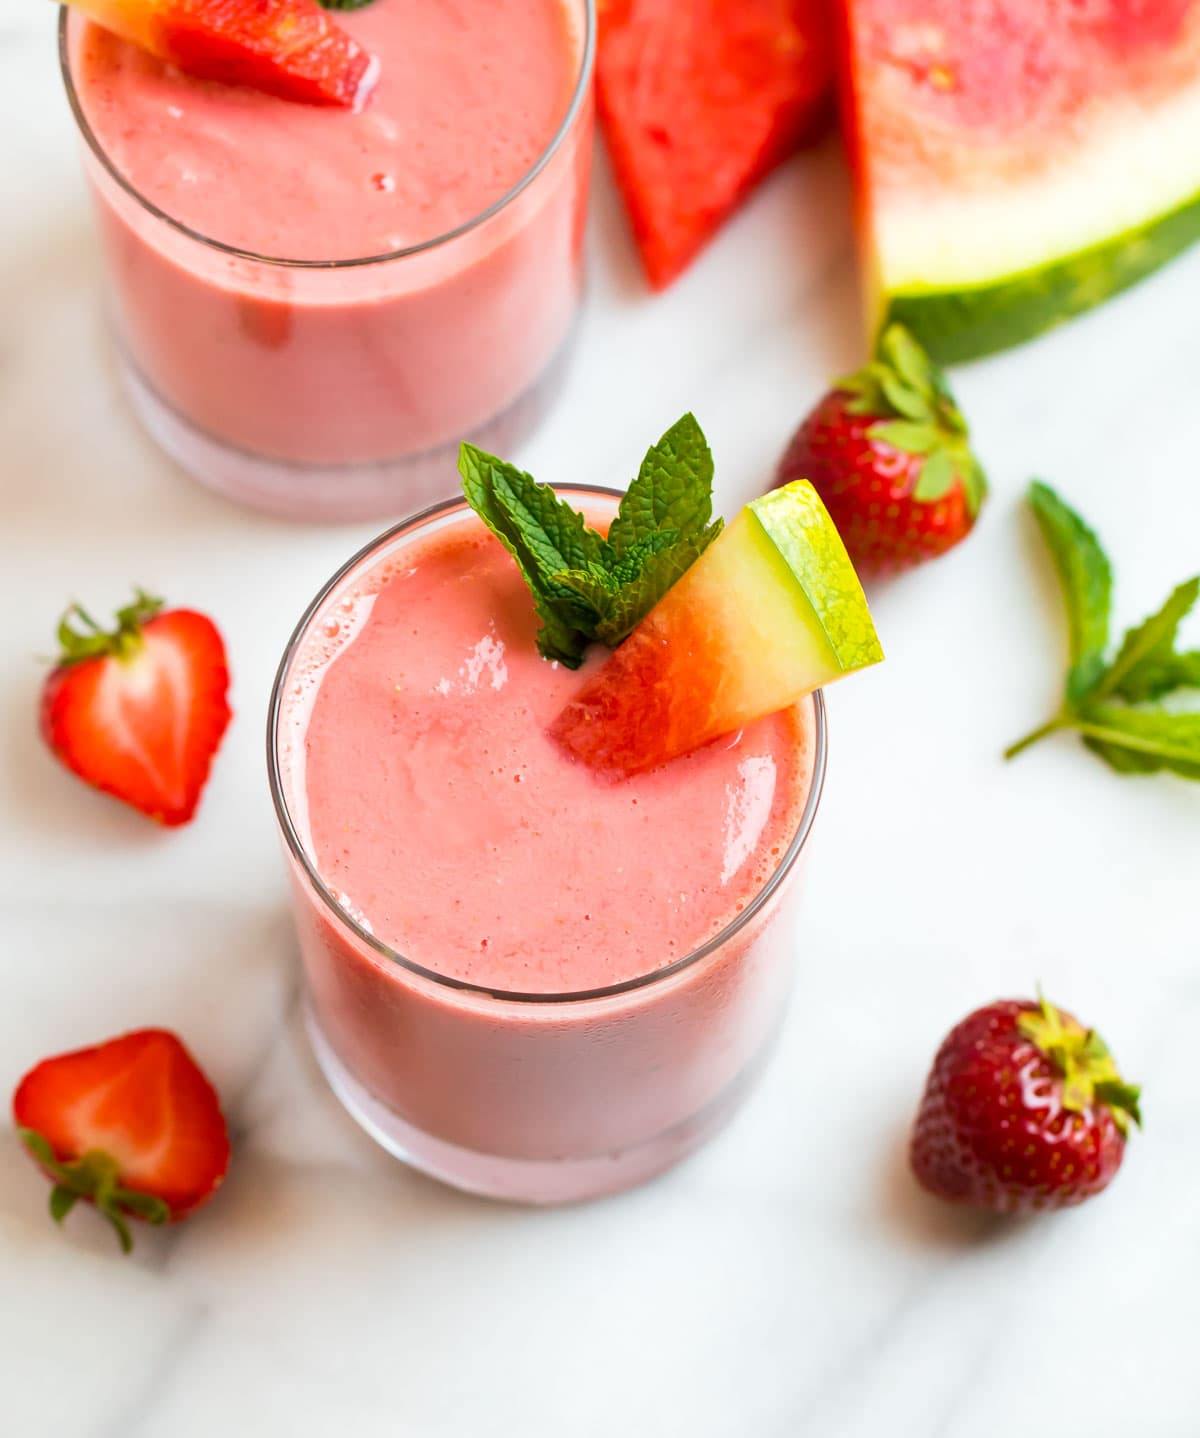 Watermelon smoothies served in glasses